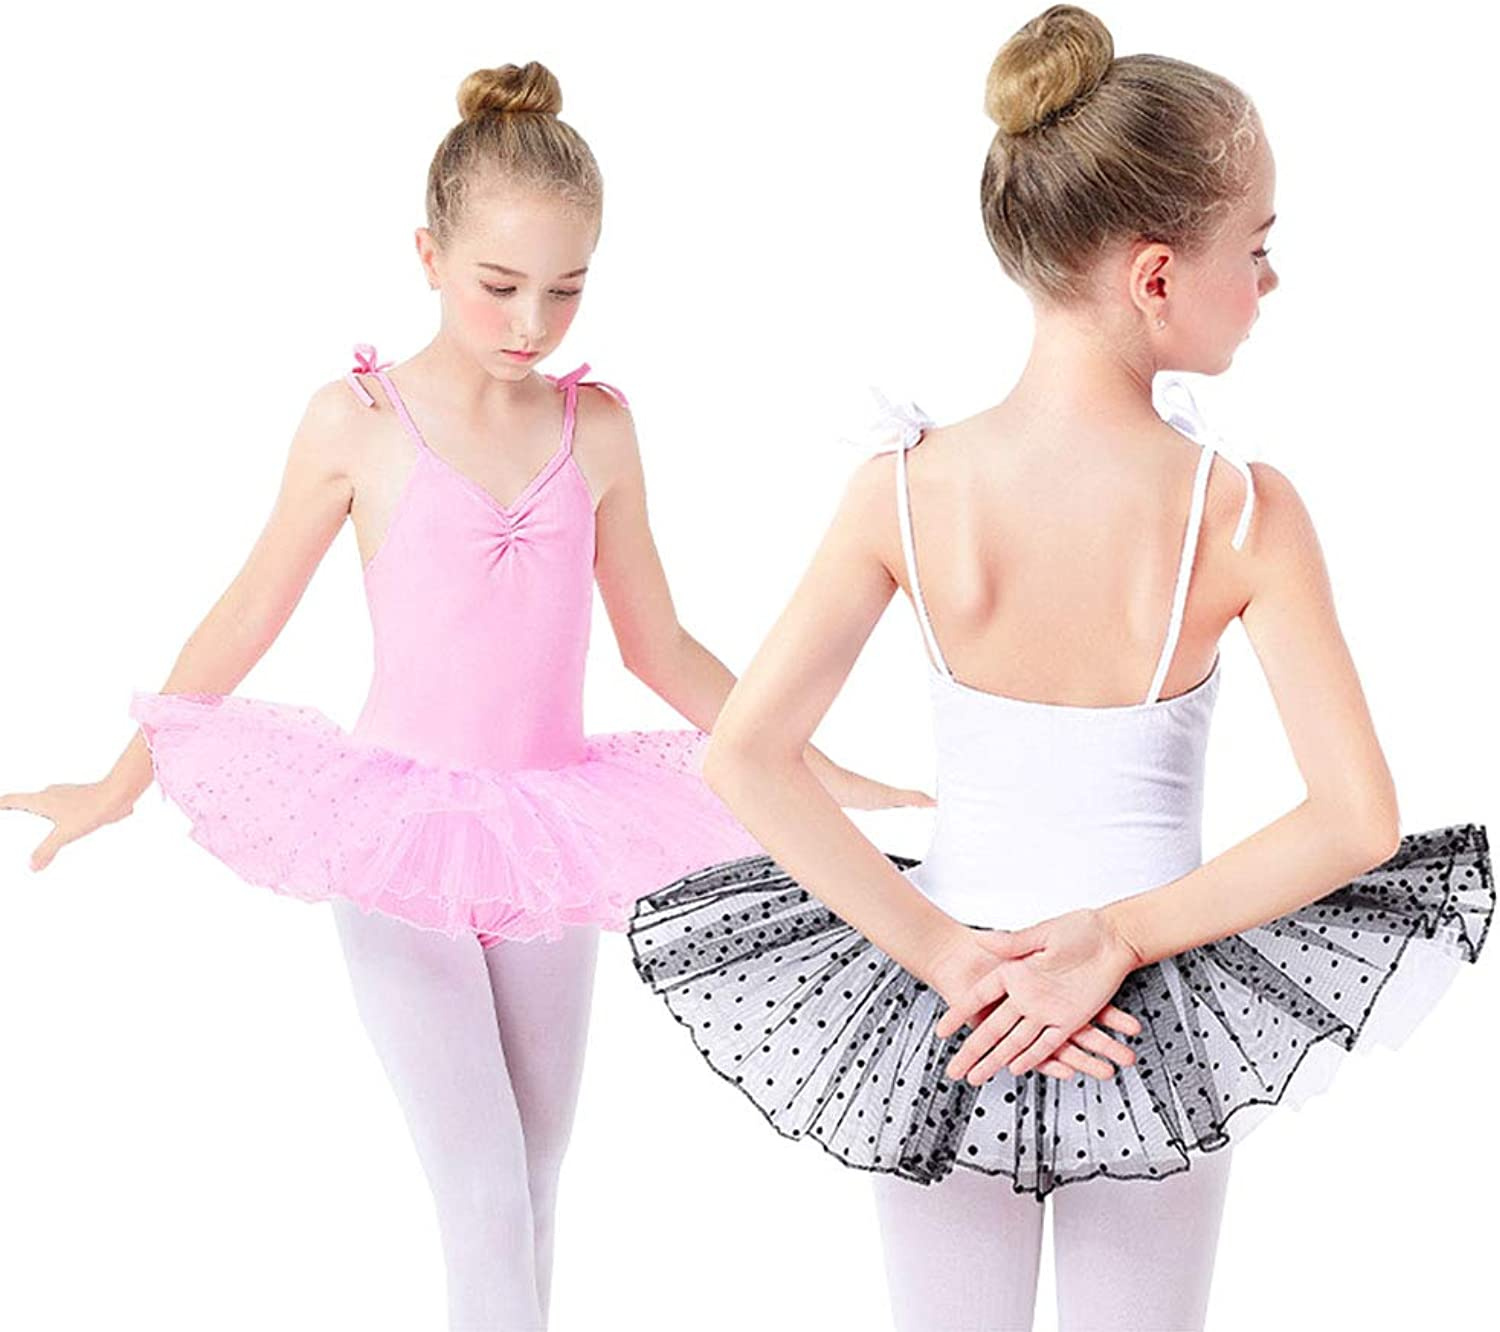 Girls Camisole Ballet Dance Leotard Tutu Dress Skirt Gymnastics Dancing Costumes 213 Year Old